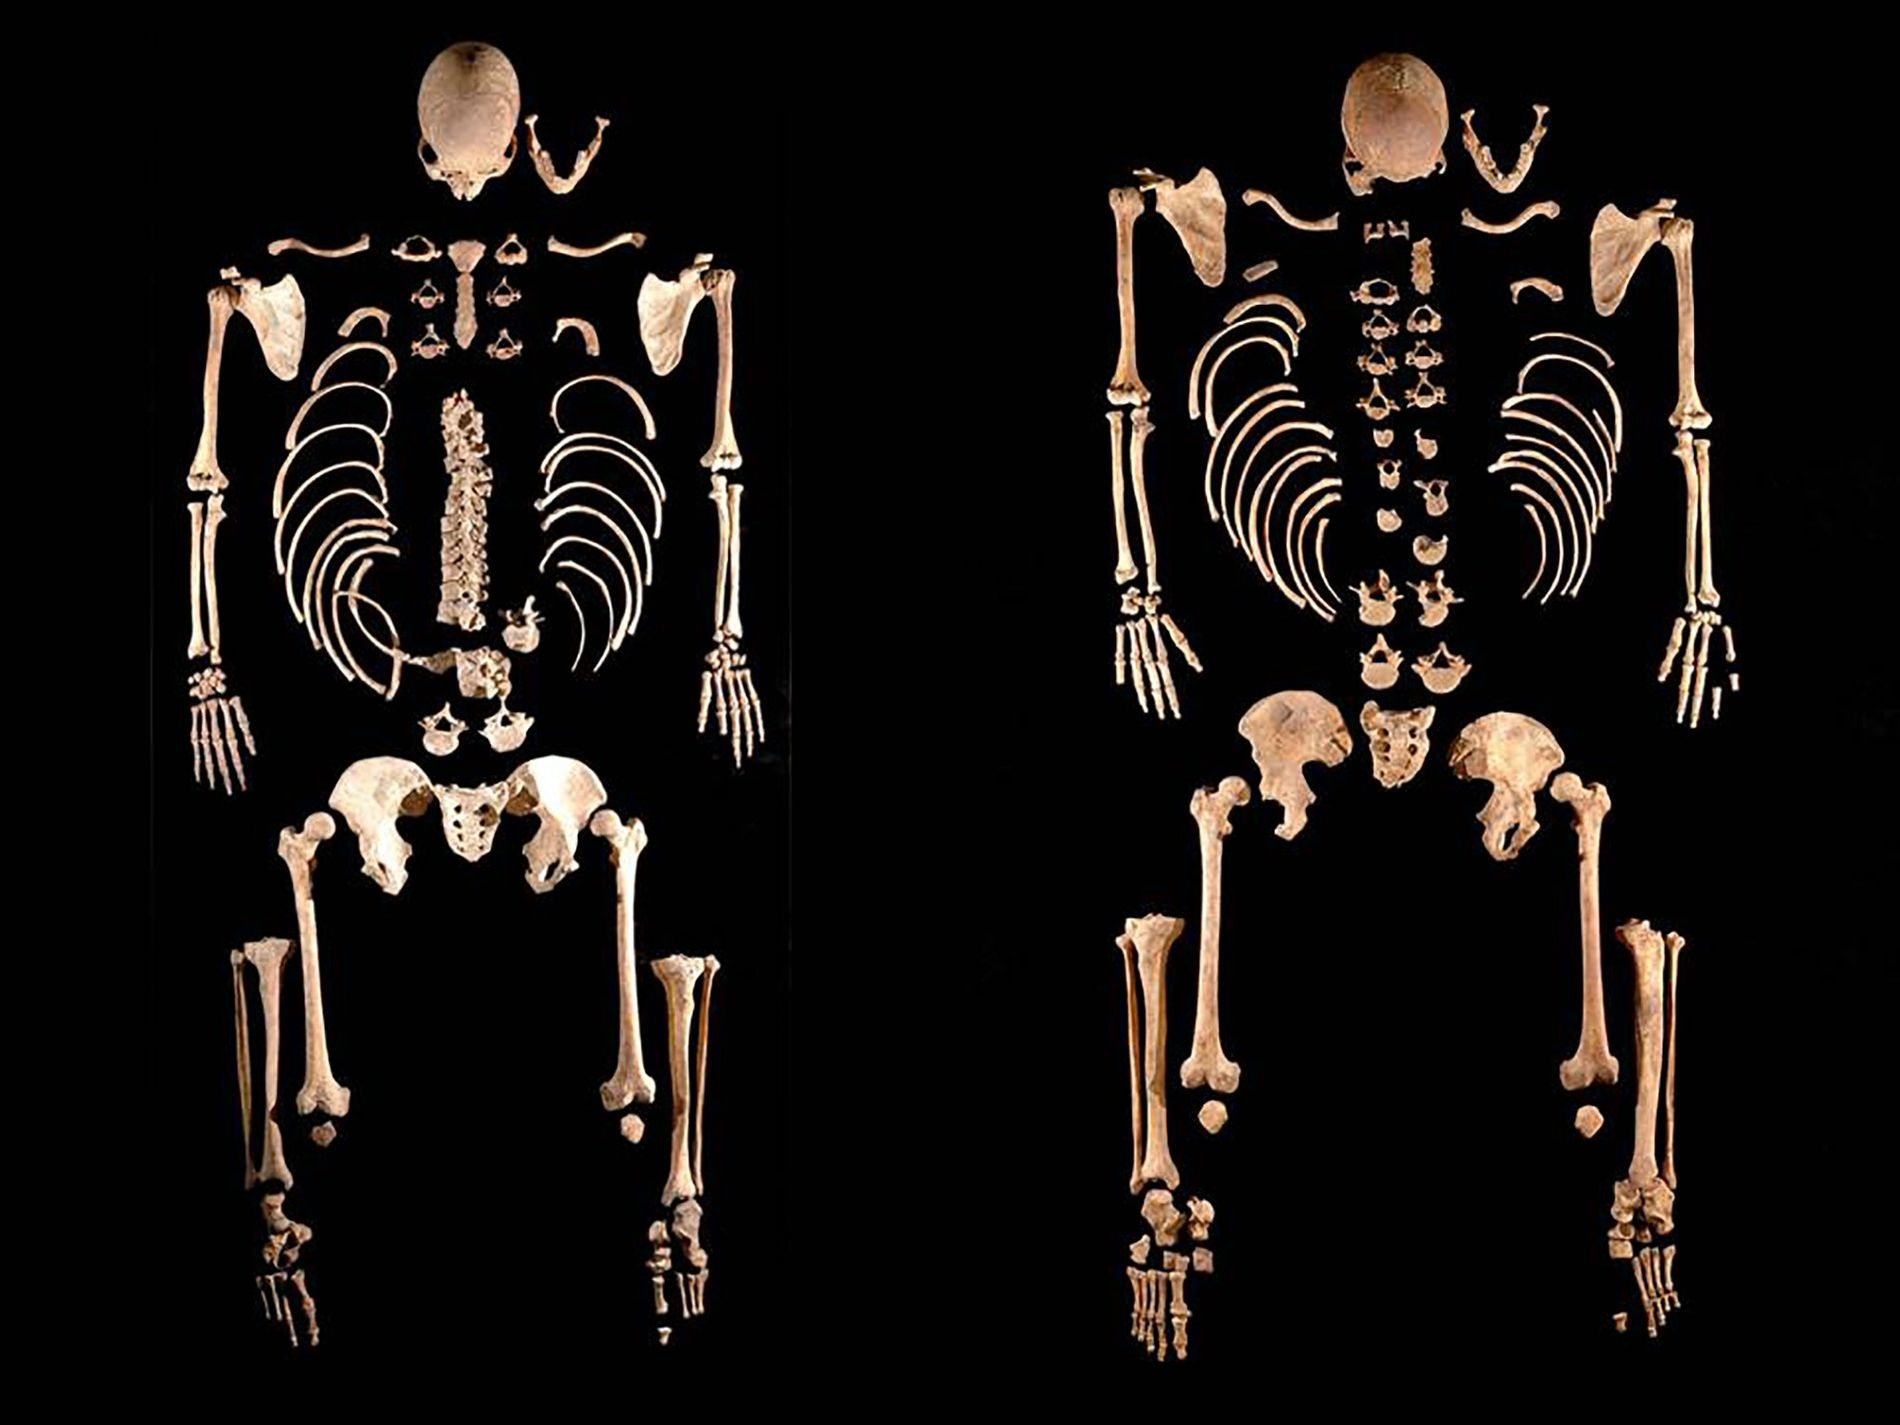 These skeletons of ancient hunter-gatherers—which happen to be brothers—helped researchers discover a surprisingly complex genetic picture ...